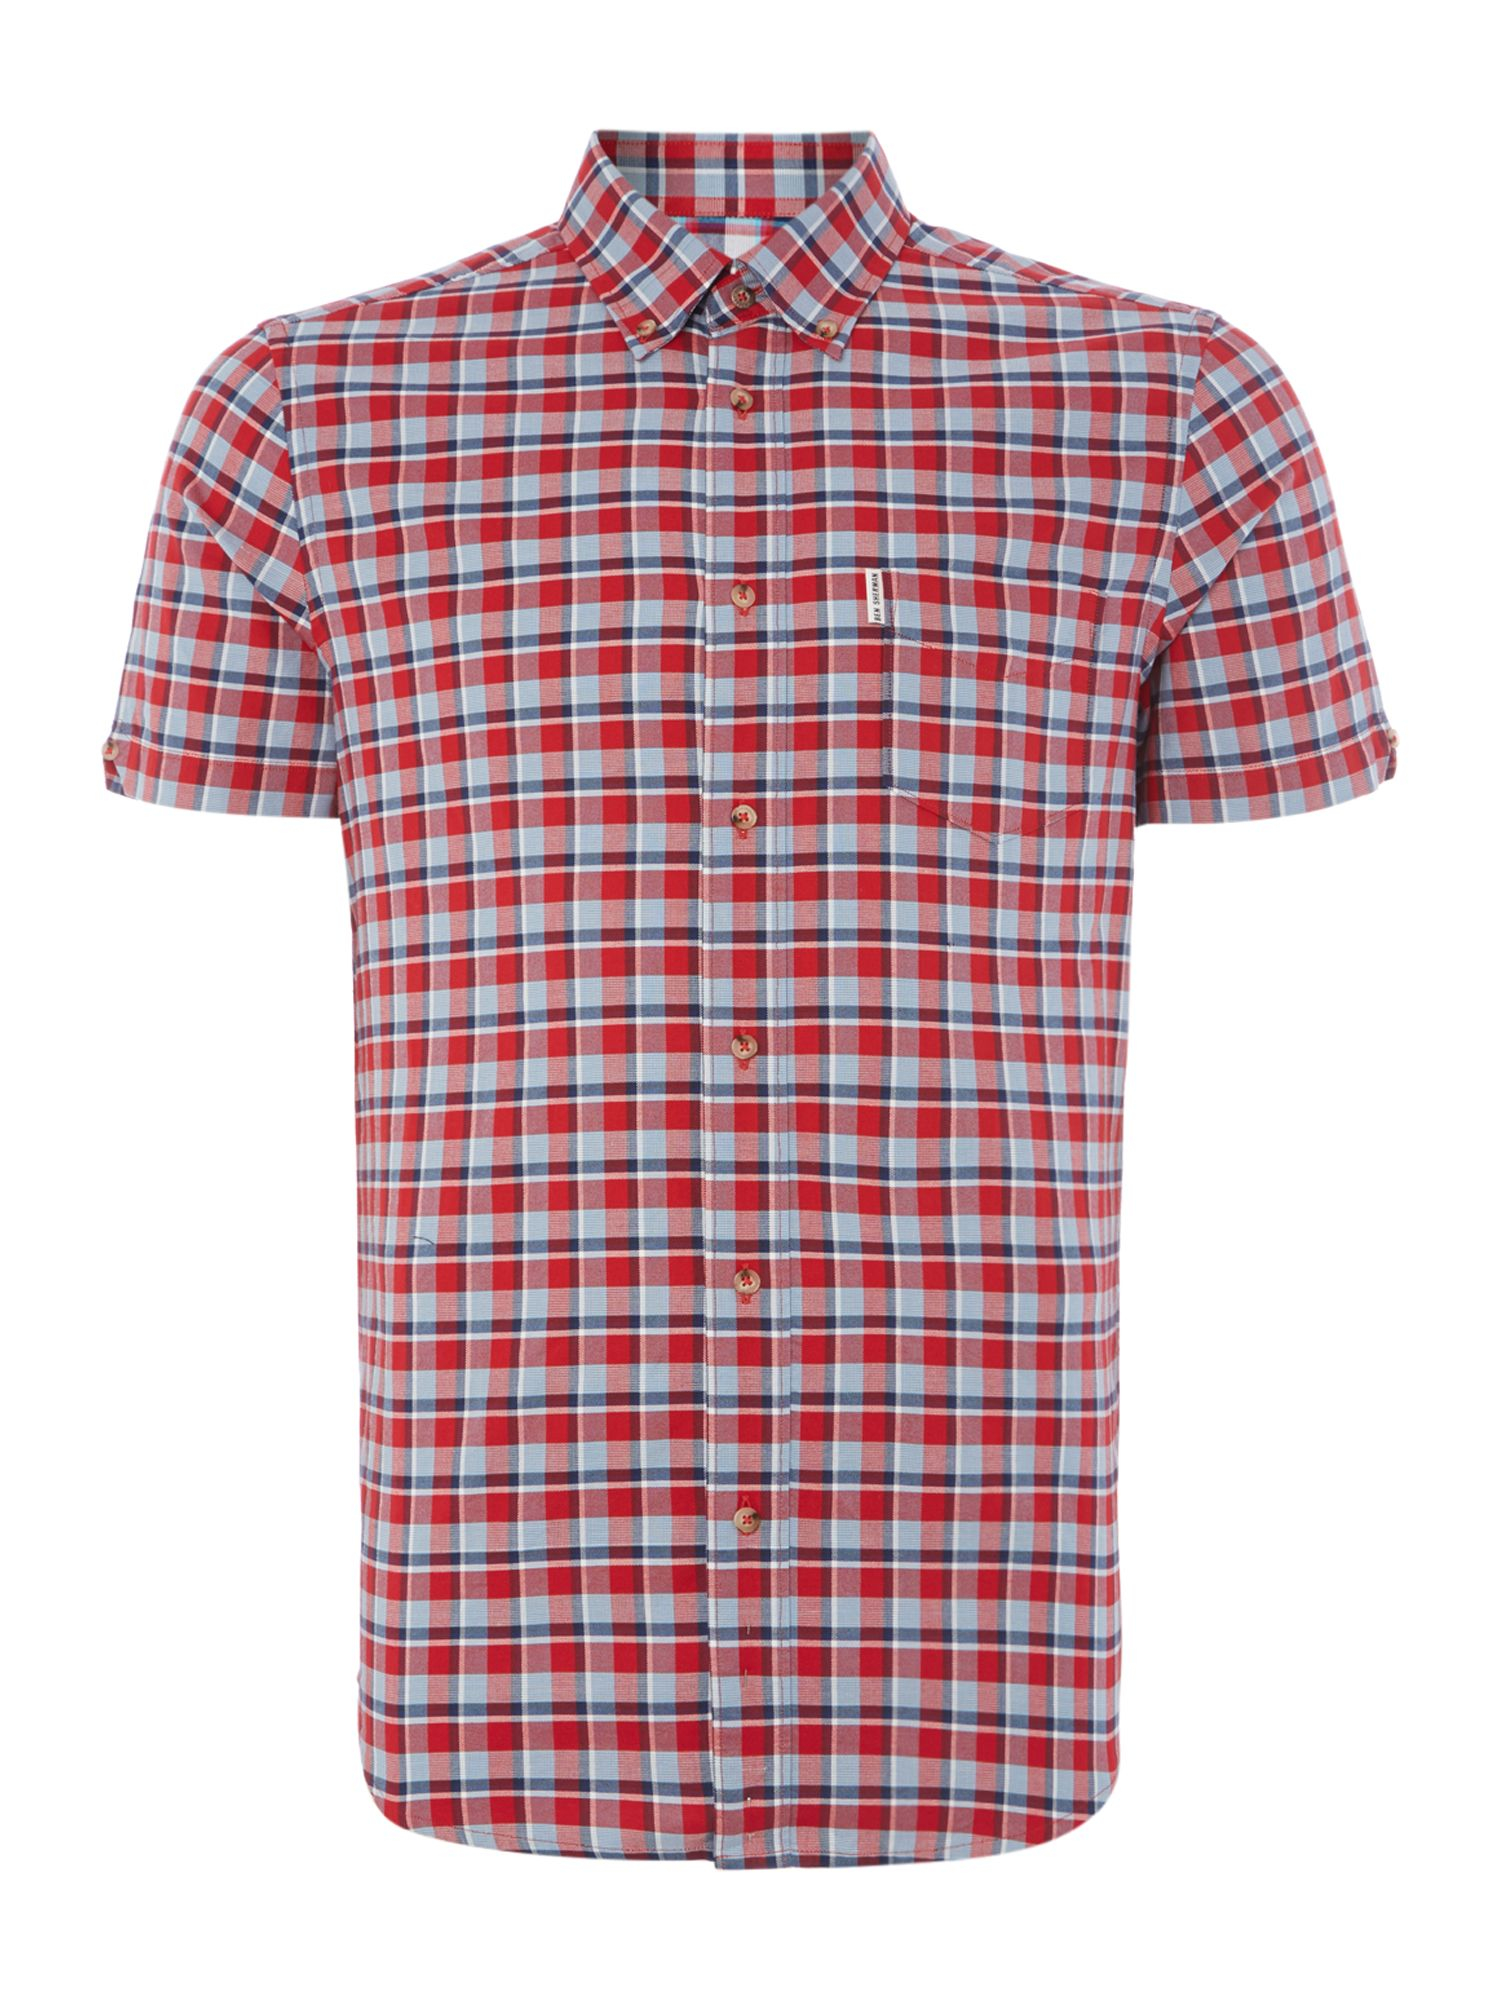 Ben sherman check slim fit short sleeve button down shirt for Athletic fit button down shirts